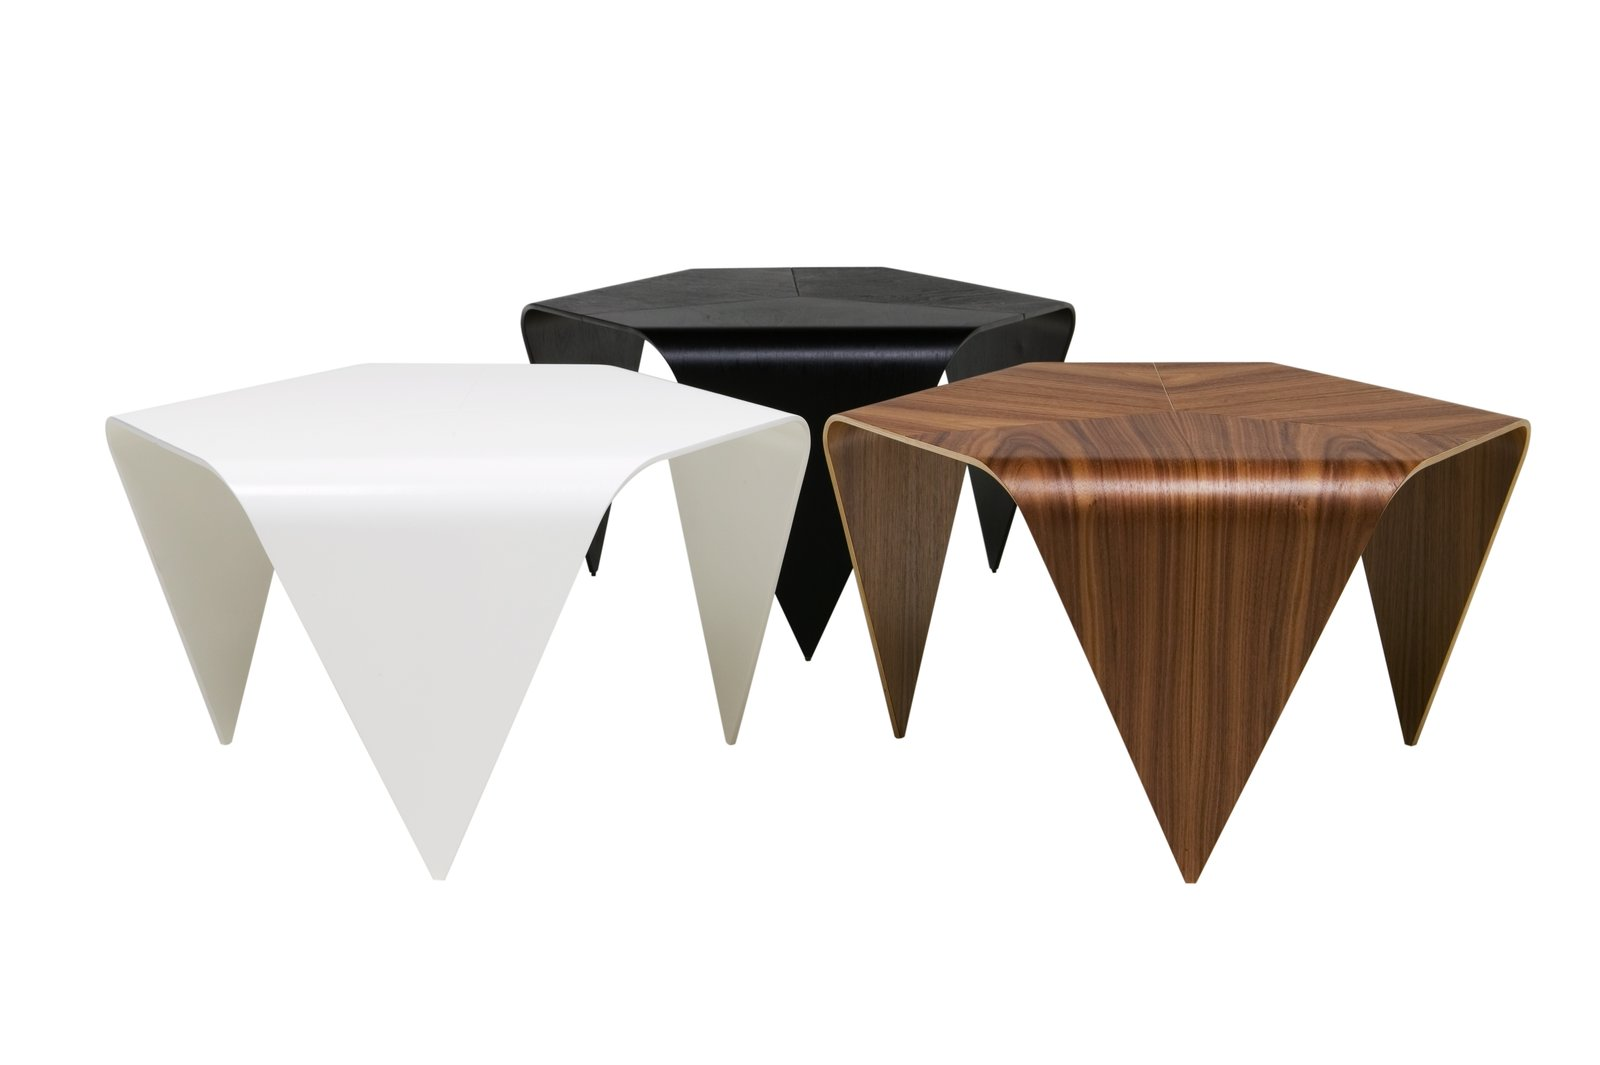 Tapiovarra's 1954 Trienna coffee table is made of three pieces smoothly conjoined to form one surface with six rounded edges. The tables, which are made of formed birch wood with surface veneer in walnut, are manufactured in Finland by Artek. 100+ Best Modern Seating Designs by Dwell